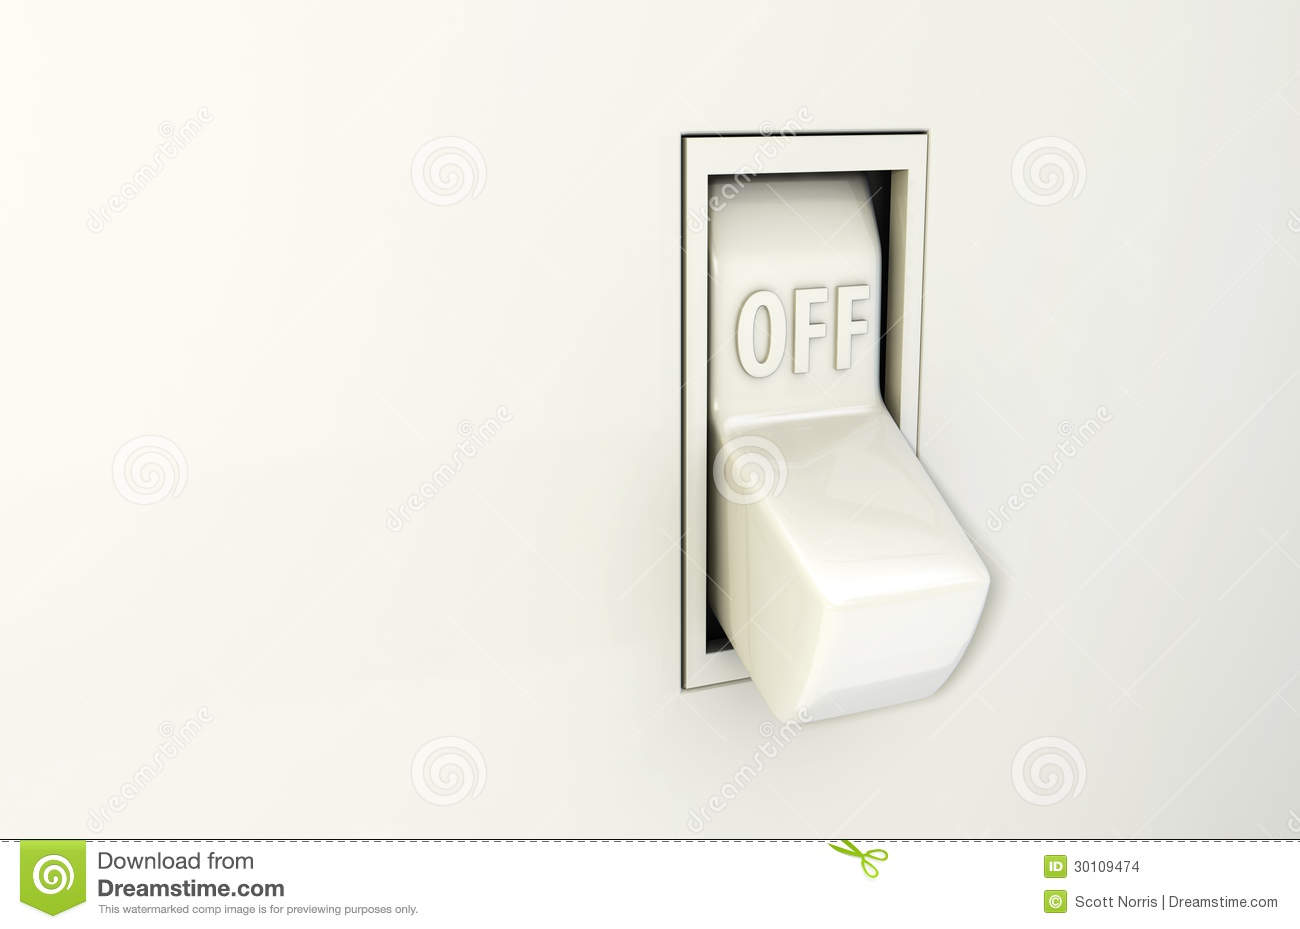 Light Switch Off Clipart Wall Switch Off Stock Images Image 30109474